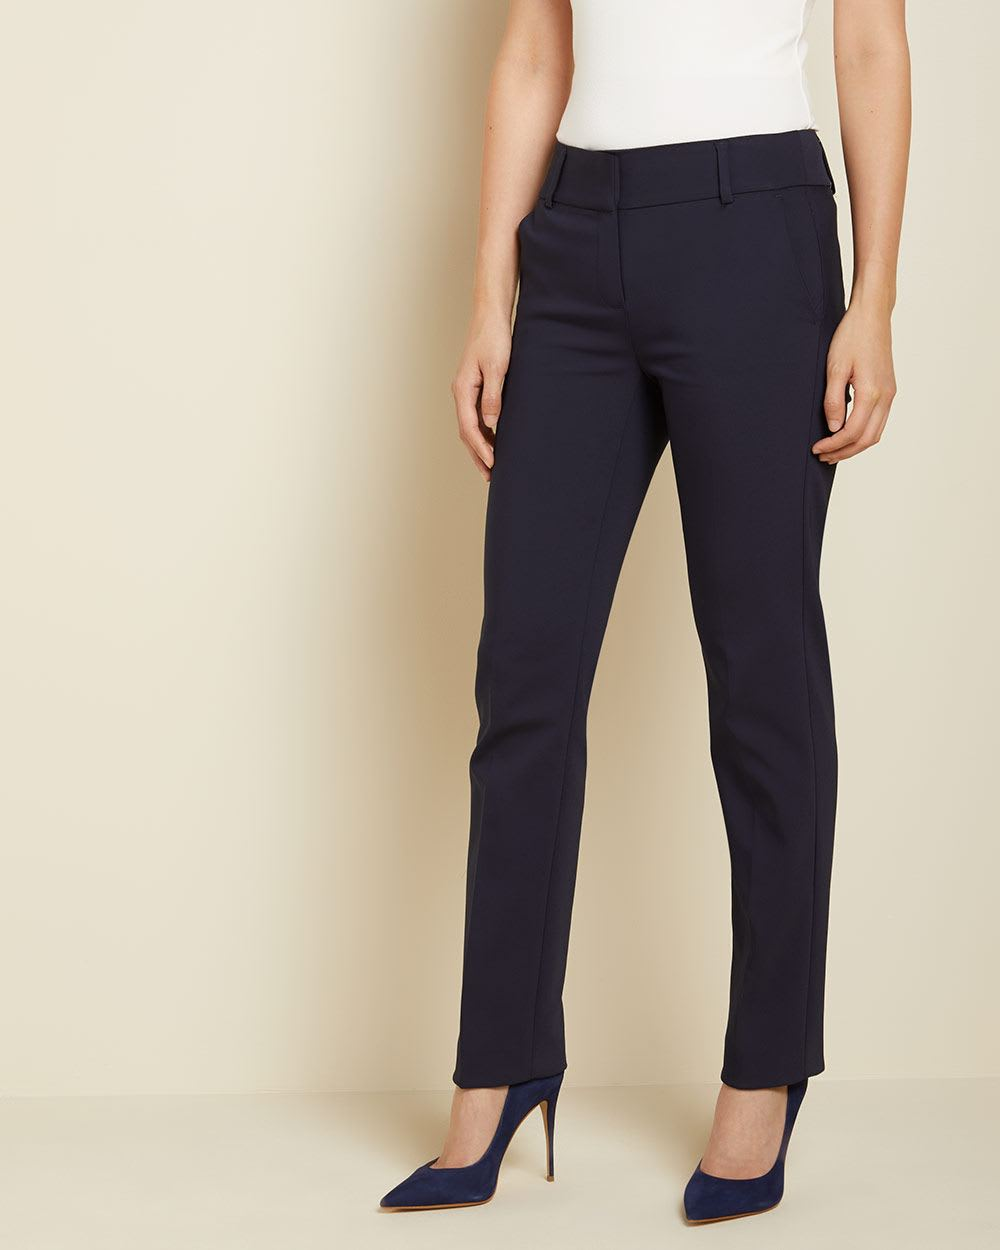 Modern chic Signature fit Slim Leg Pant